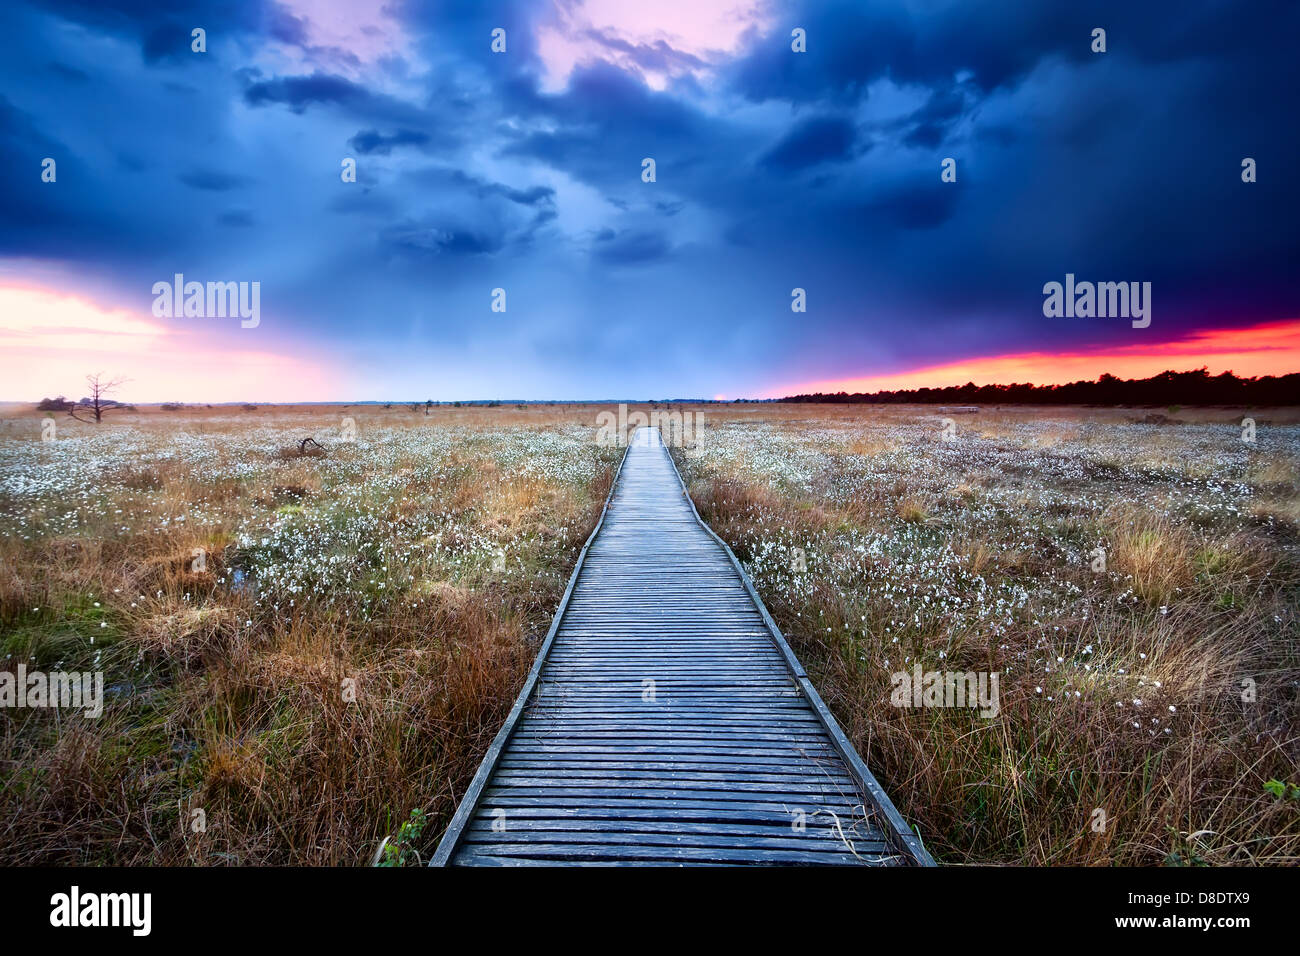 wooden path on swamp with flowering cottograss at sunset - Stock Image